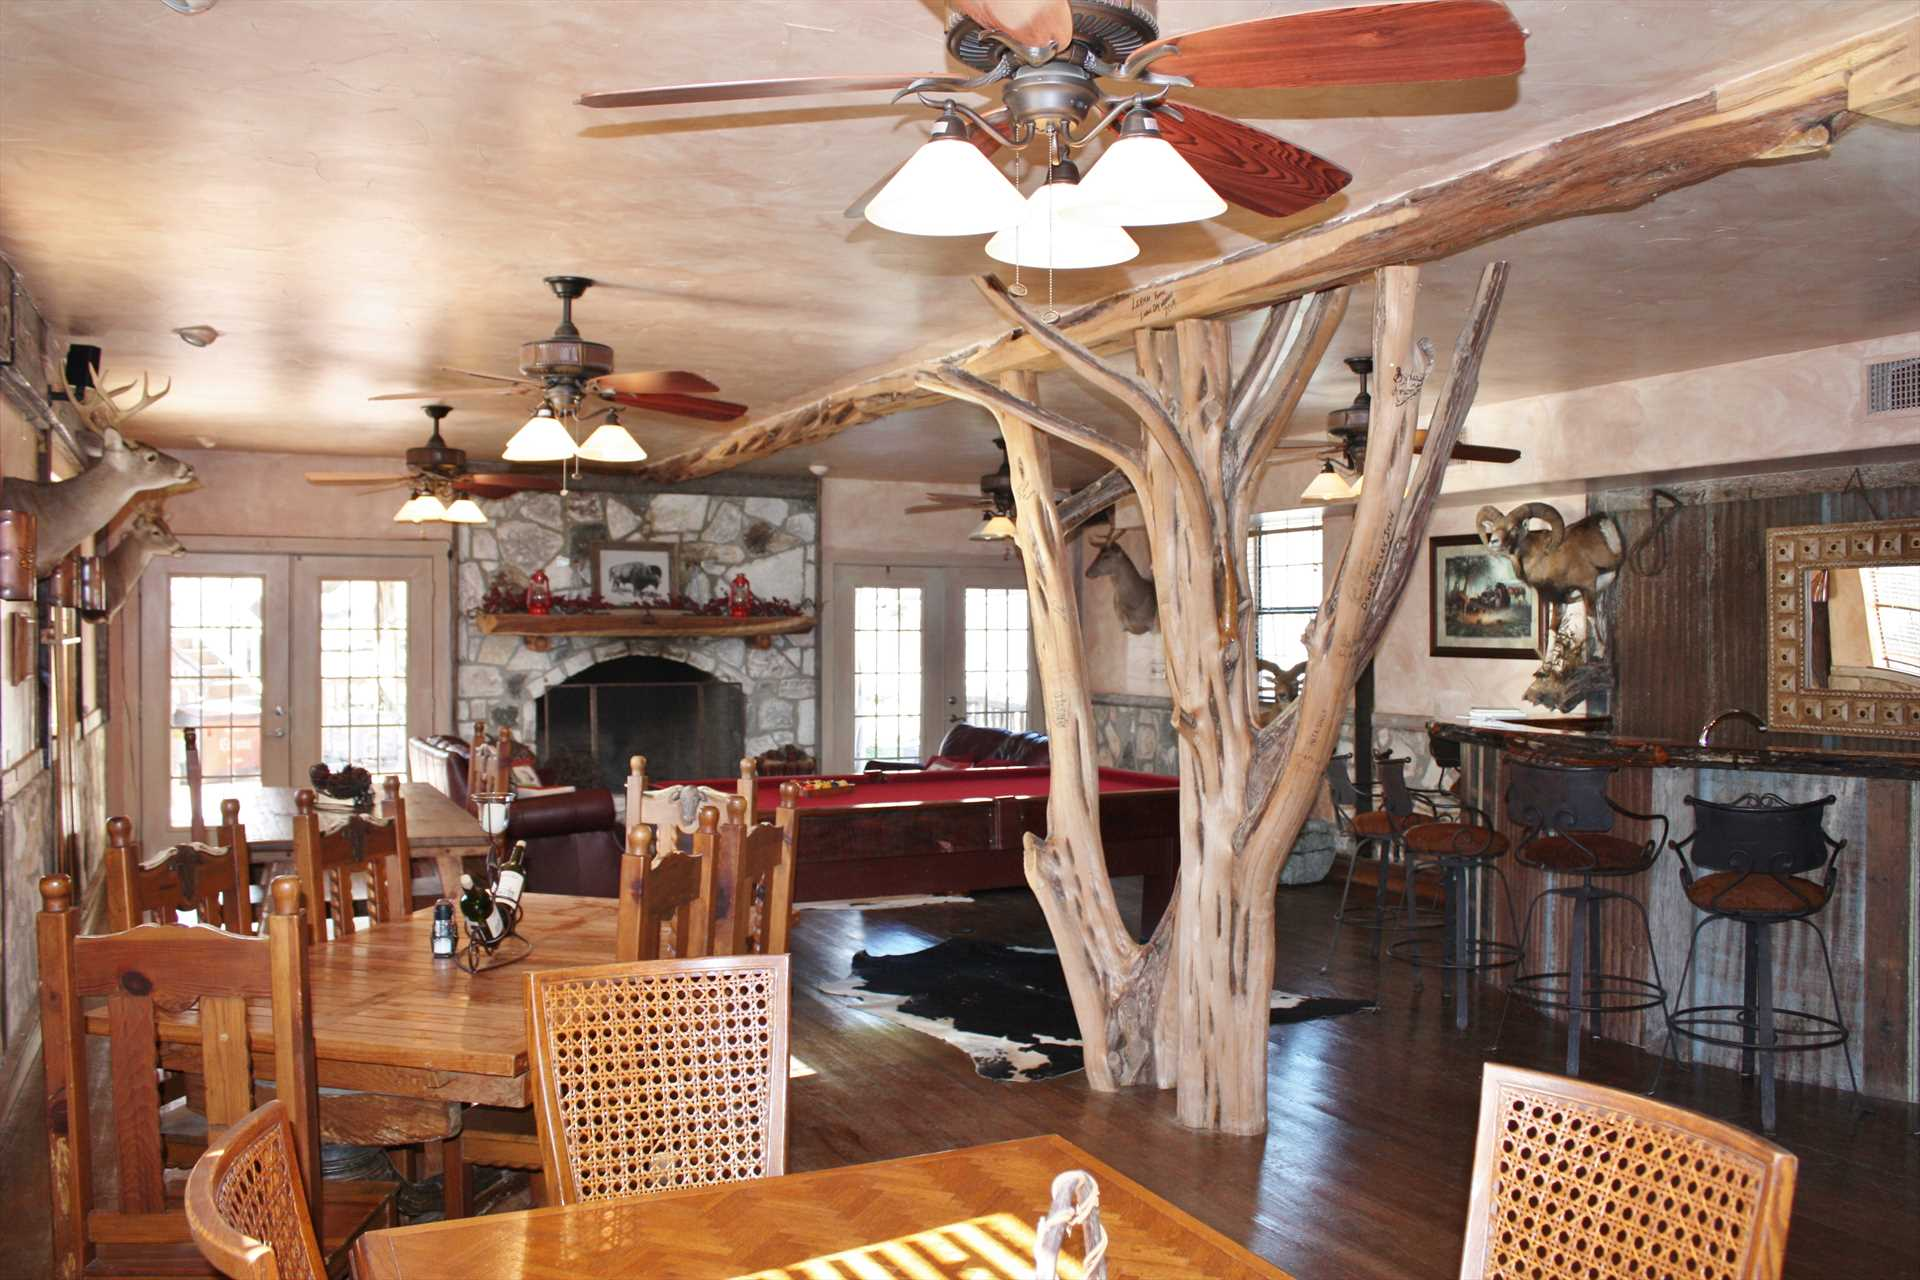 Unique wood and wicker work grace the inviting common area of the ranch's dining room.